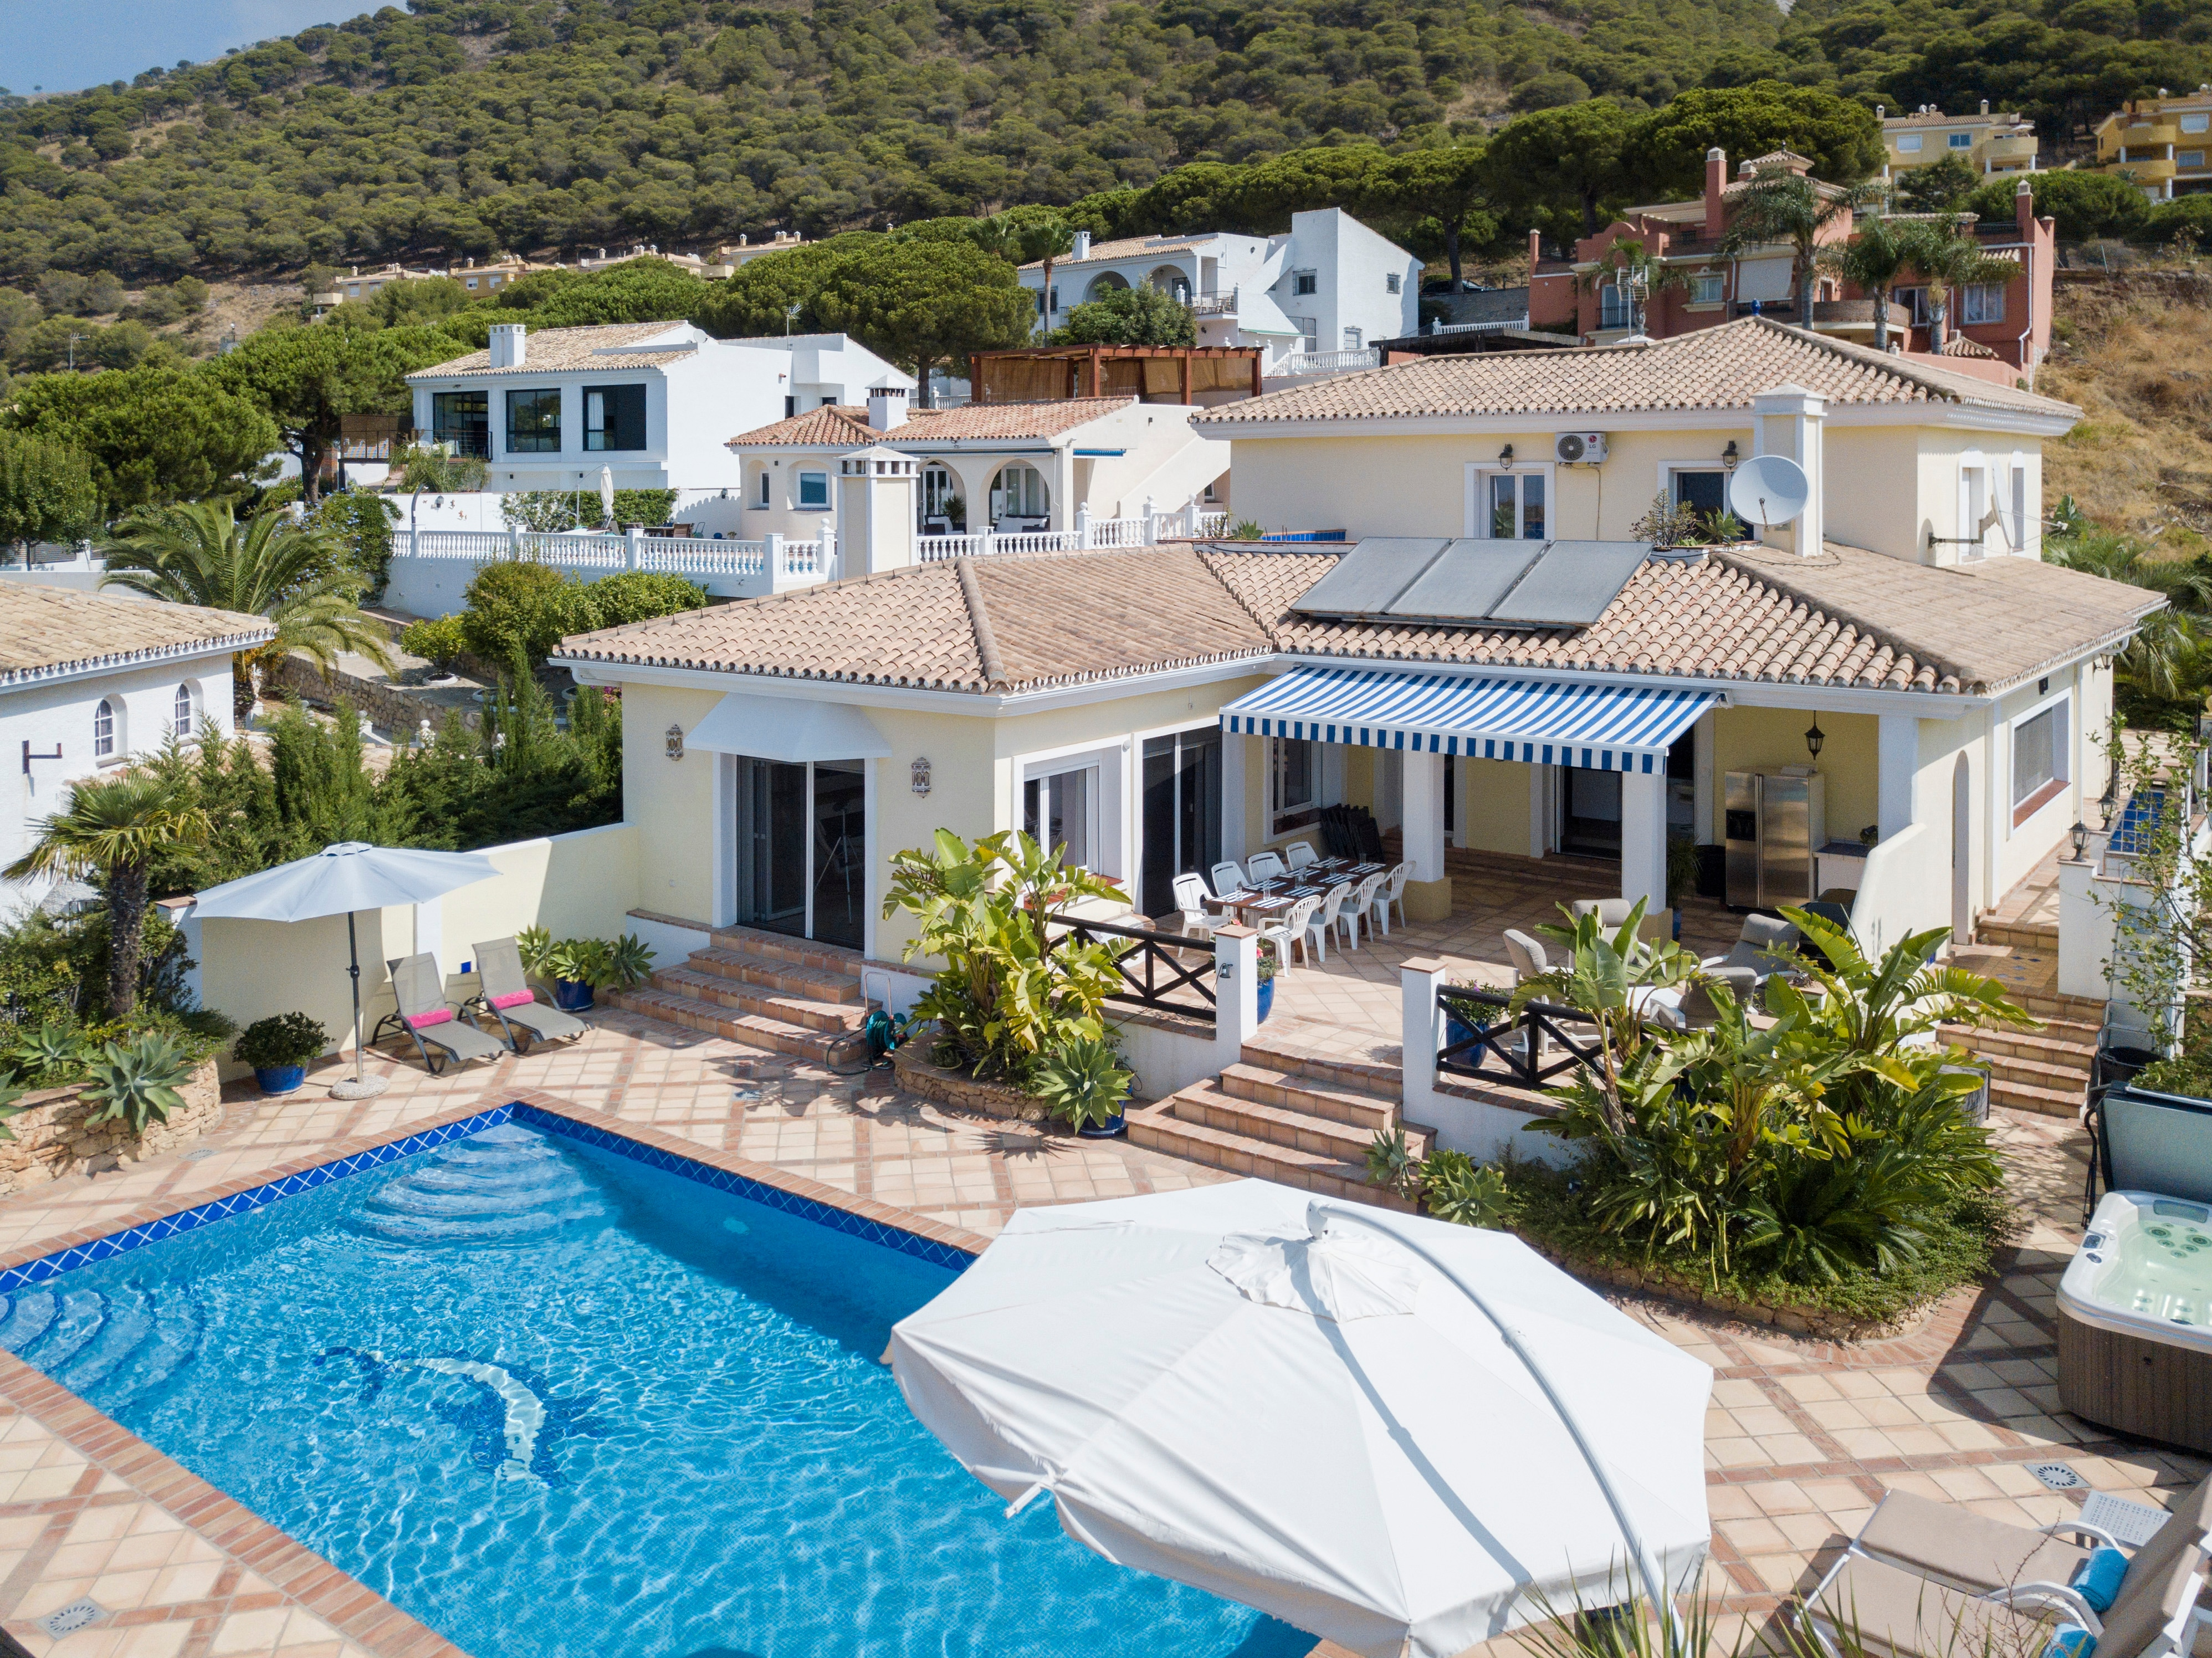 Property Image 1 - Fabulous Villa with Sea Views, Private Pool and Jacuzzi